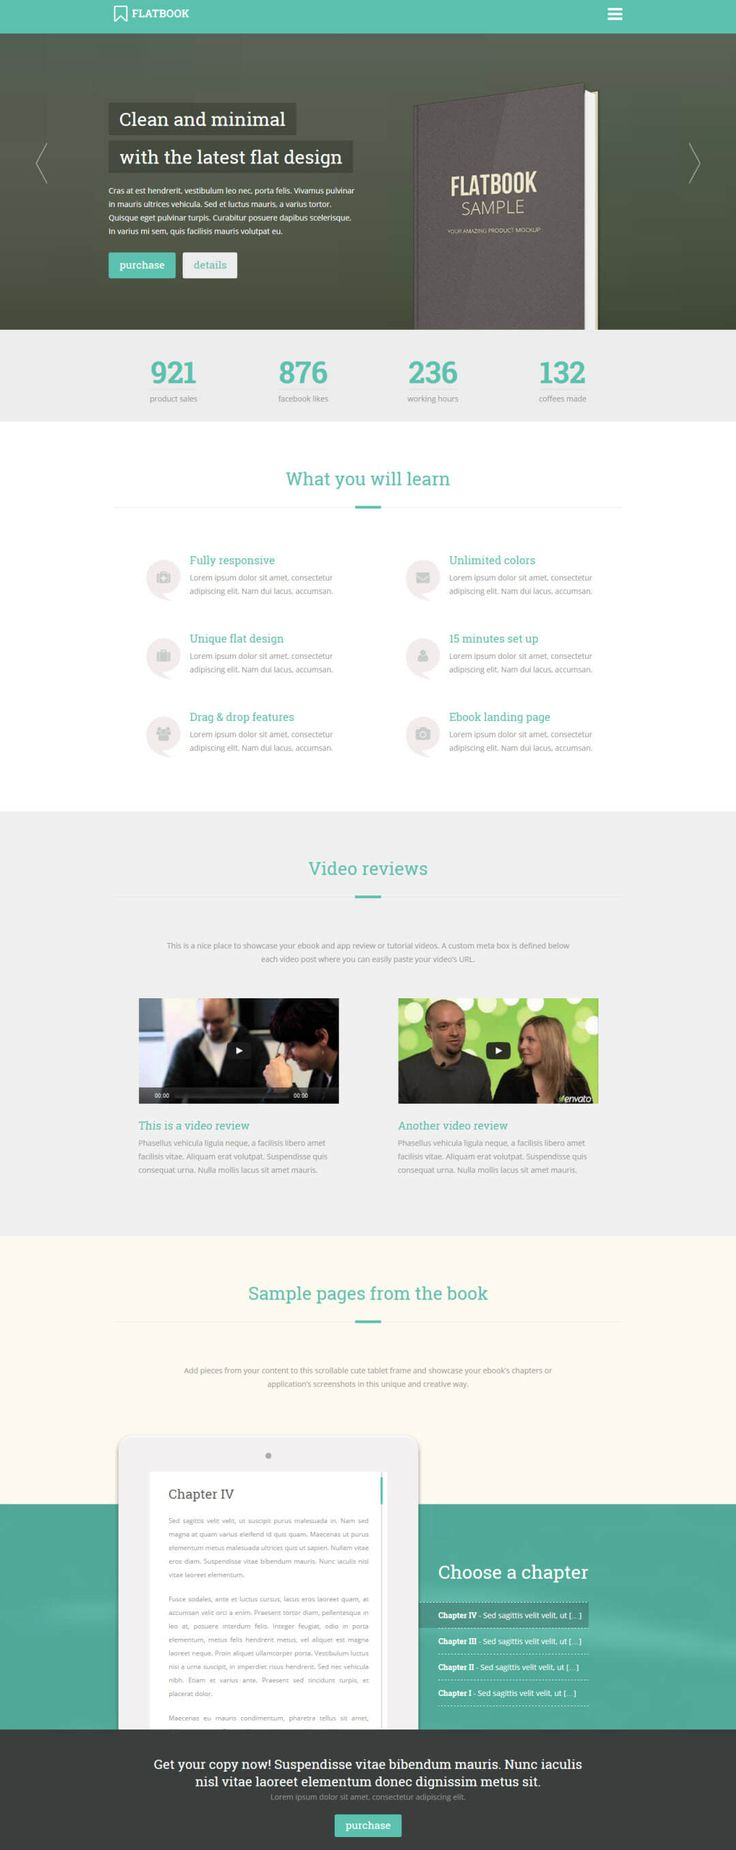 FlatBook - WordPress Theme for Authors, eBooks, Digital Downloads Click the link to DEMO | DOWNLOAD NOW